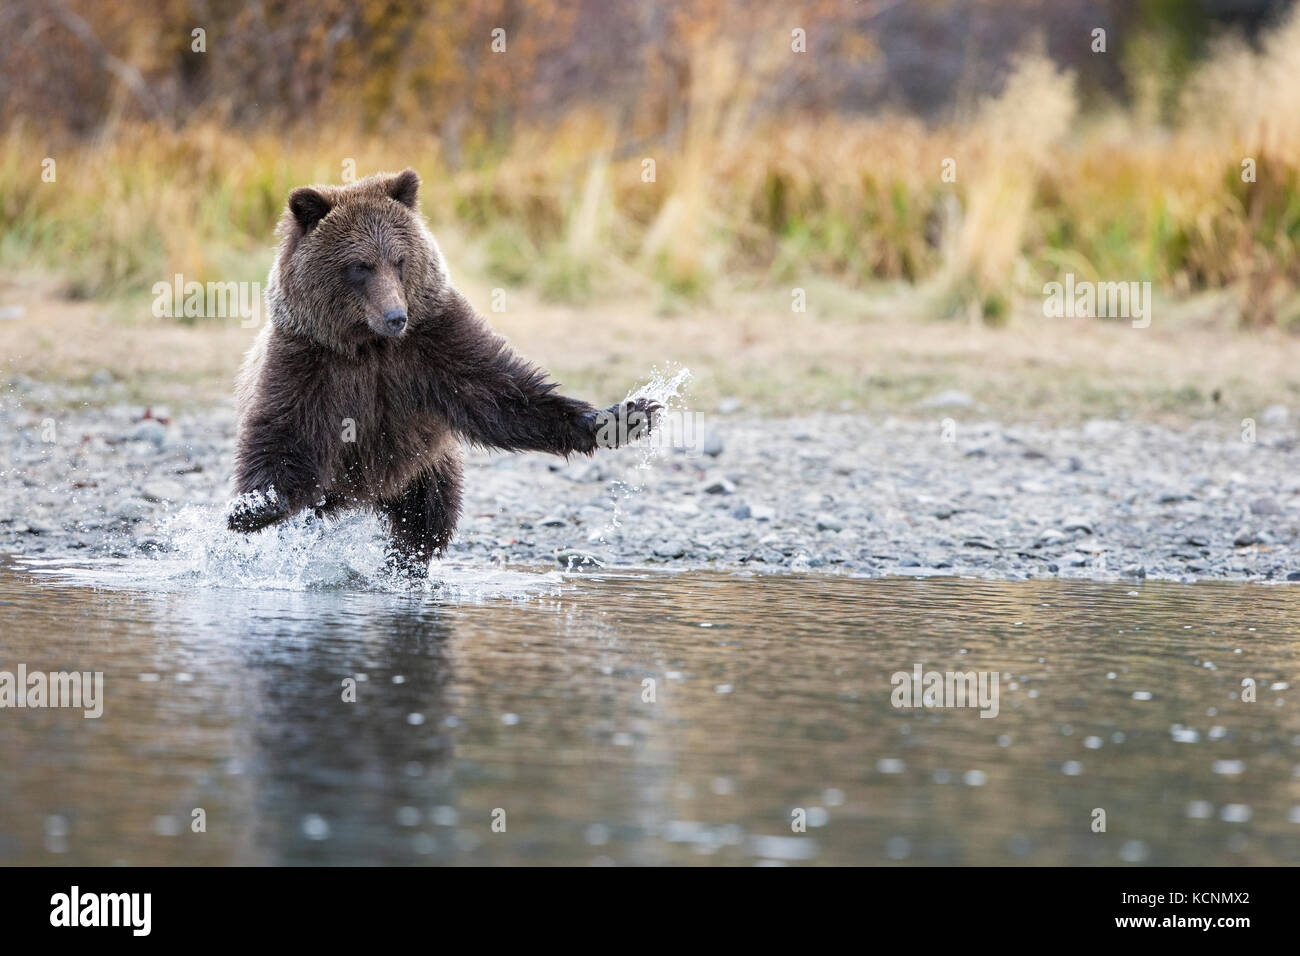 Grizzly bear (Ursus arctos horribilis), cub, charging,  Chilcotin Region, British Columbia, Canada. - Stock Image